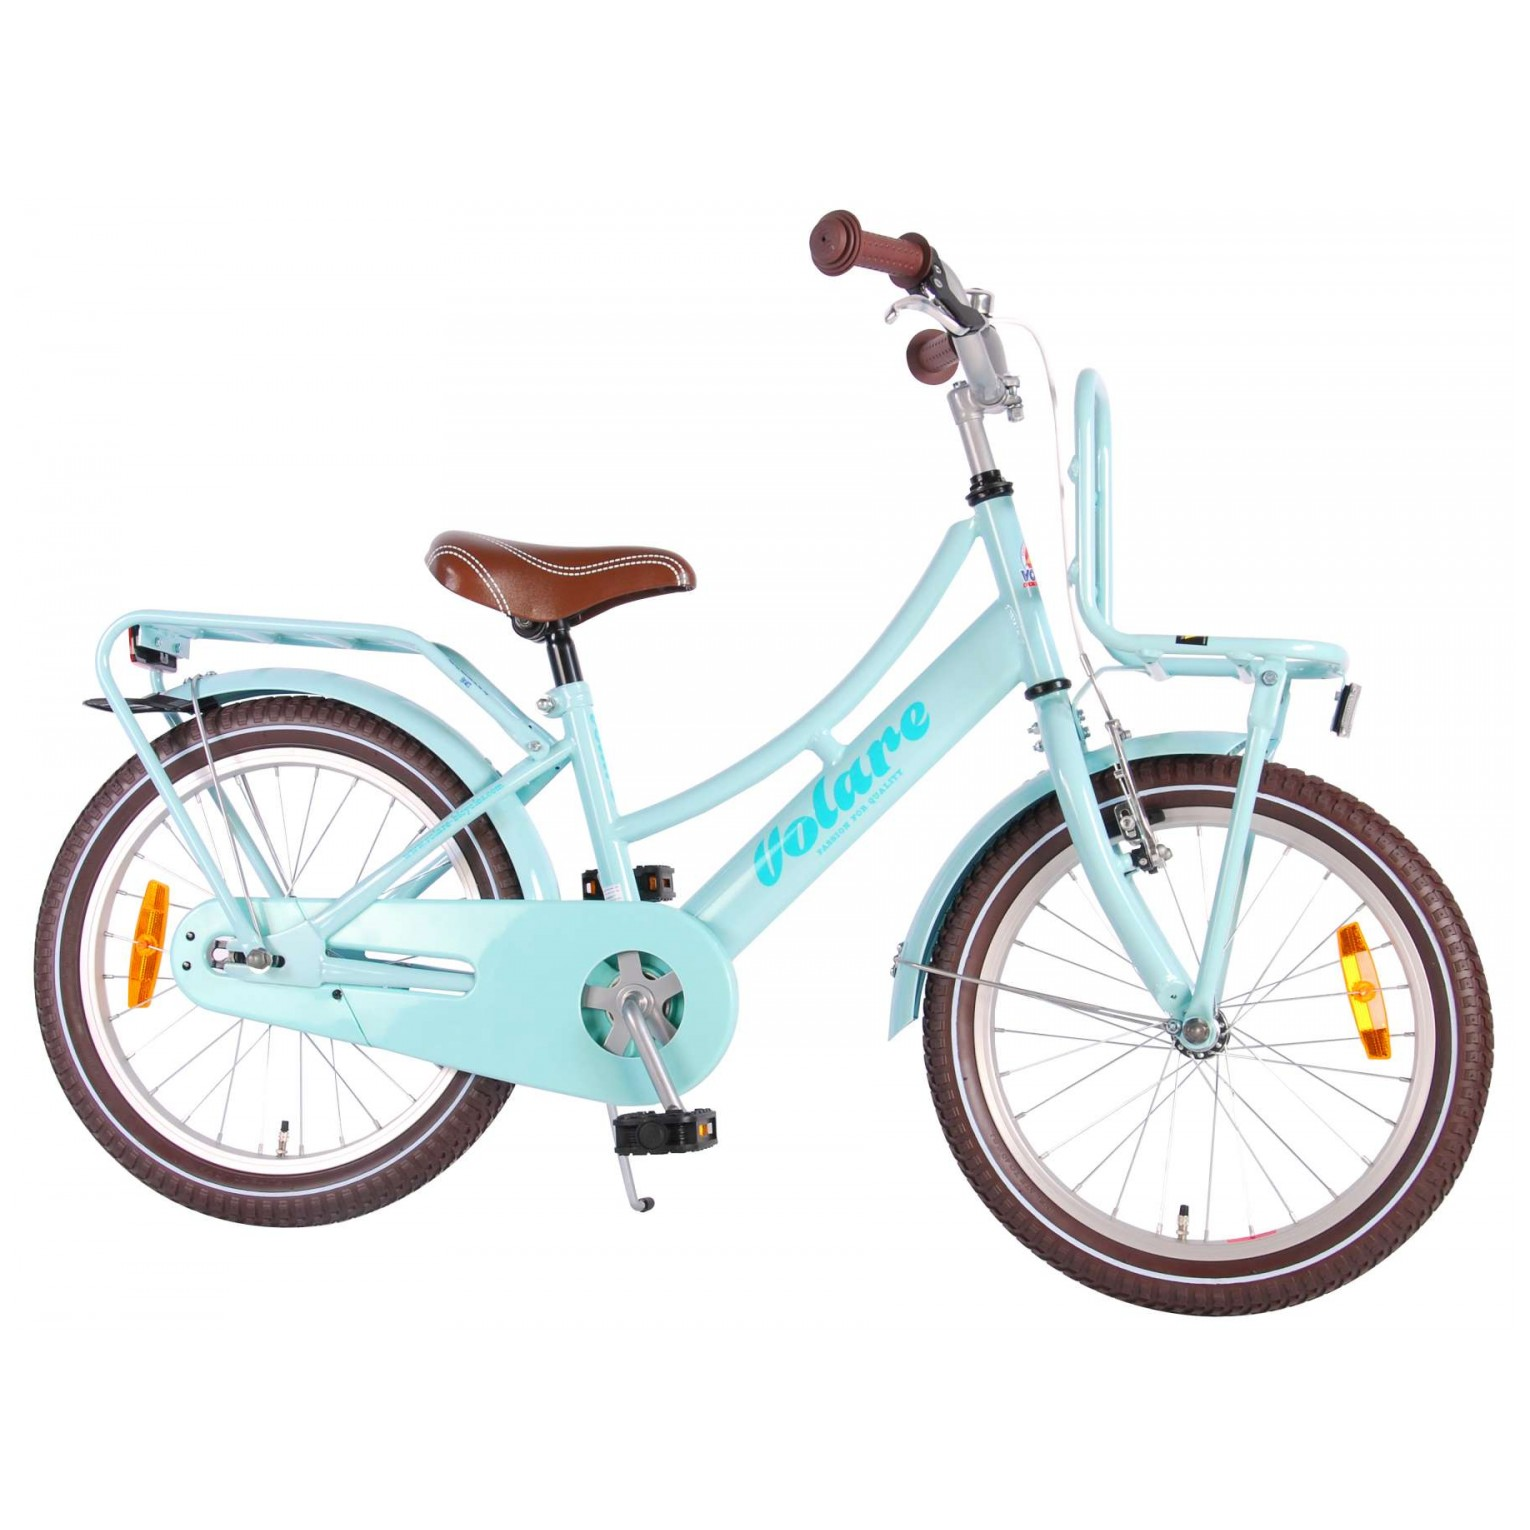 Volare Excellent Fiets - 18 inch - Mint Blauw